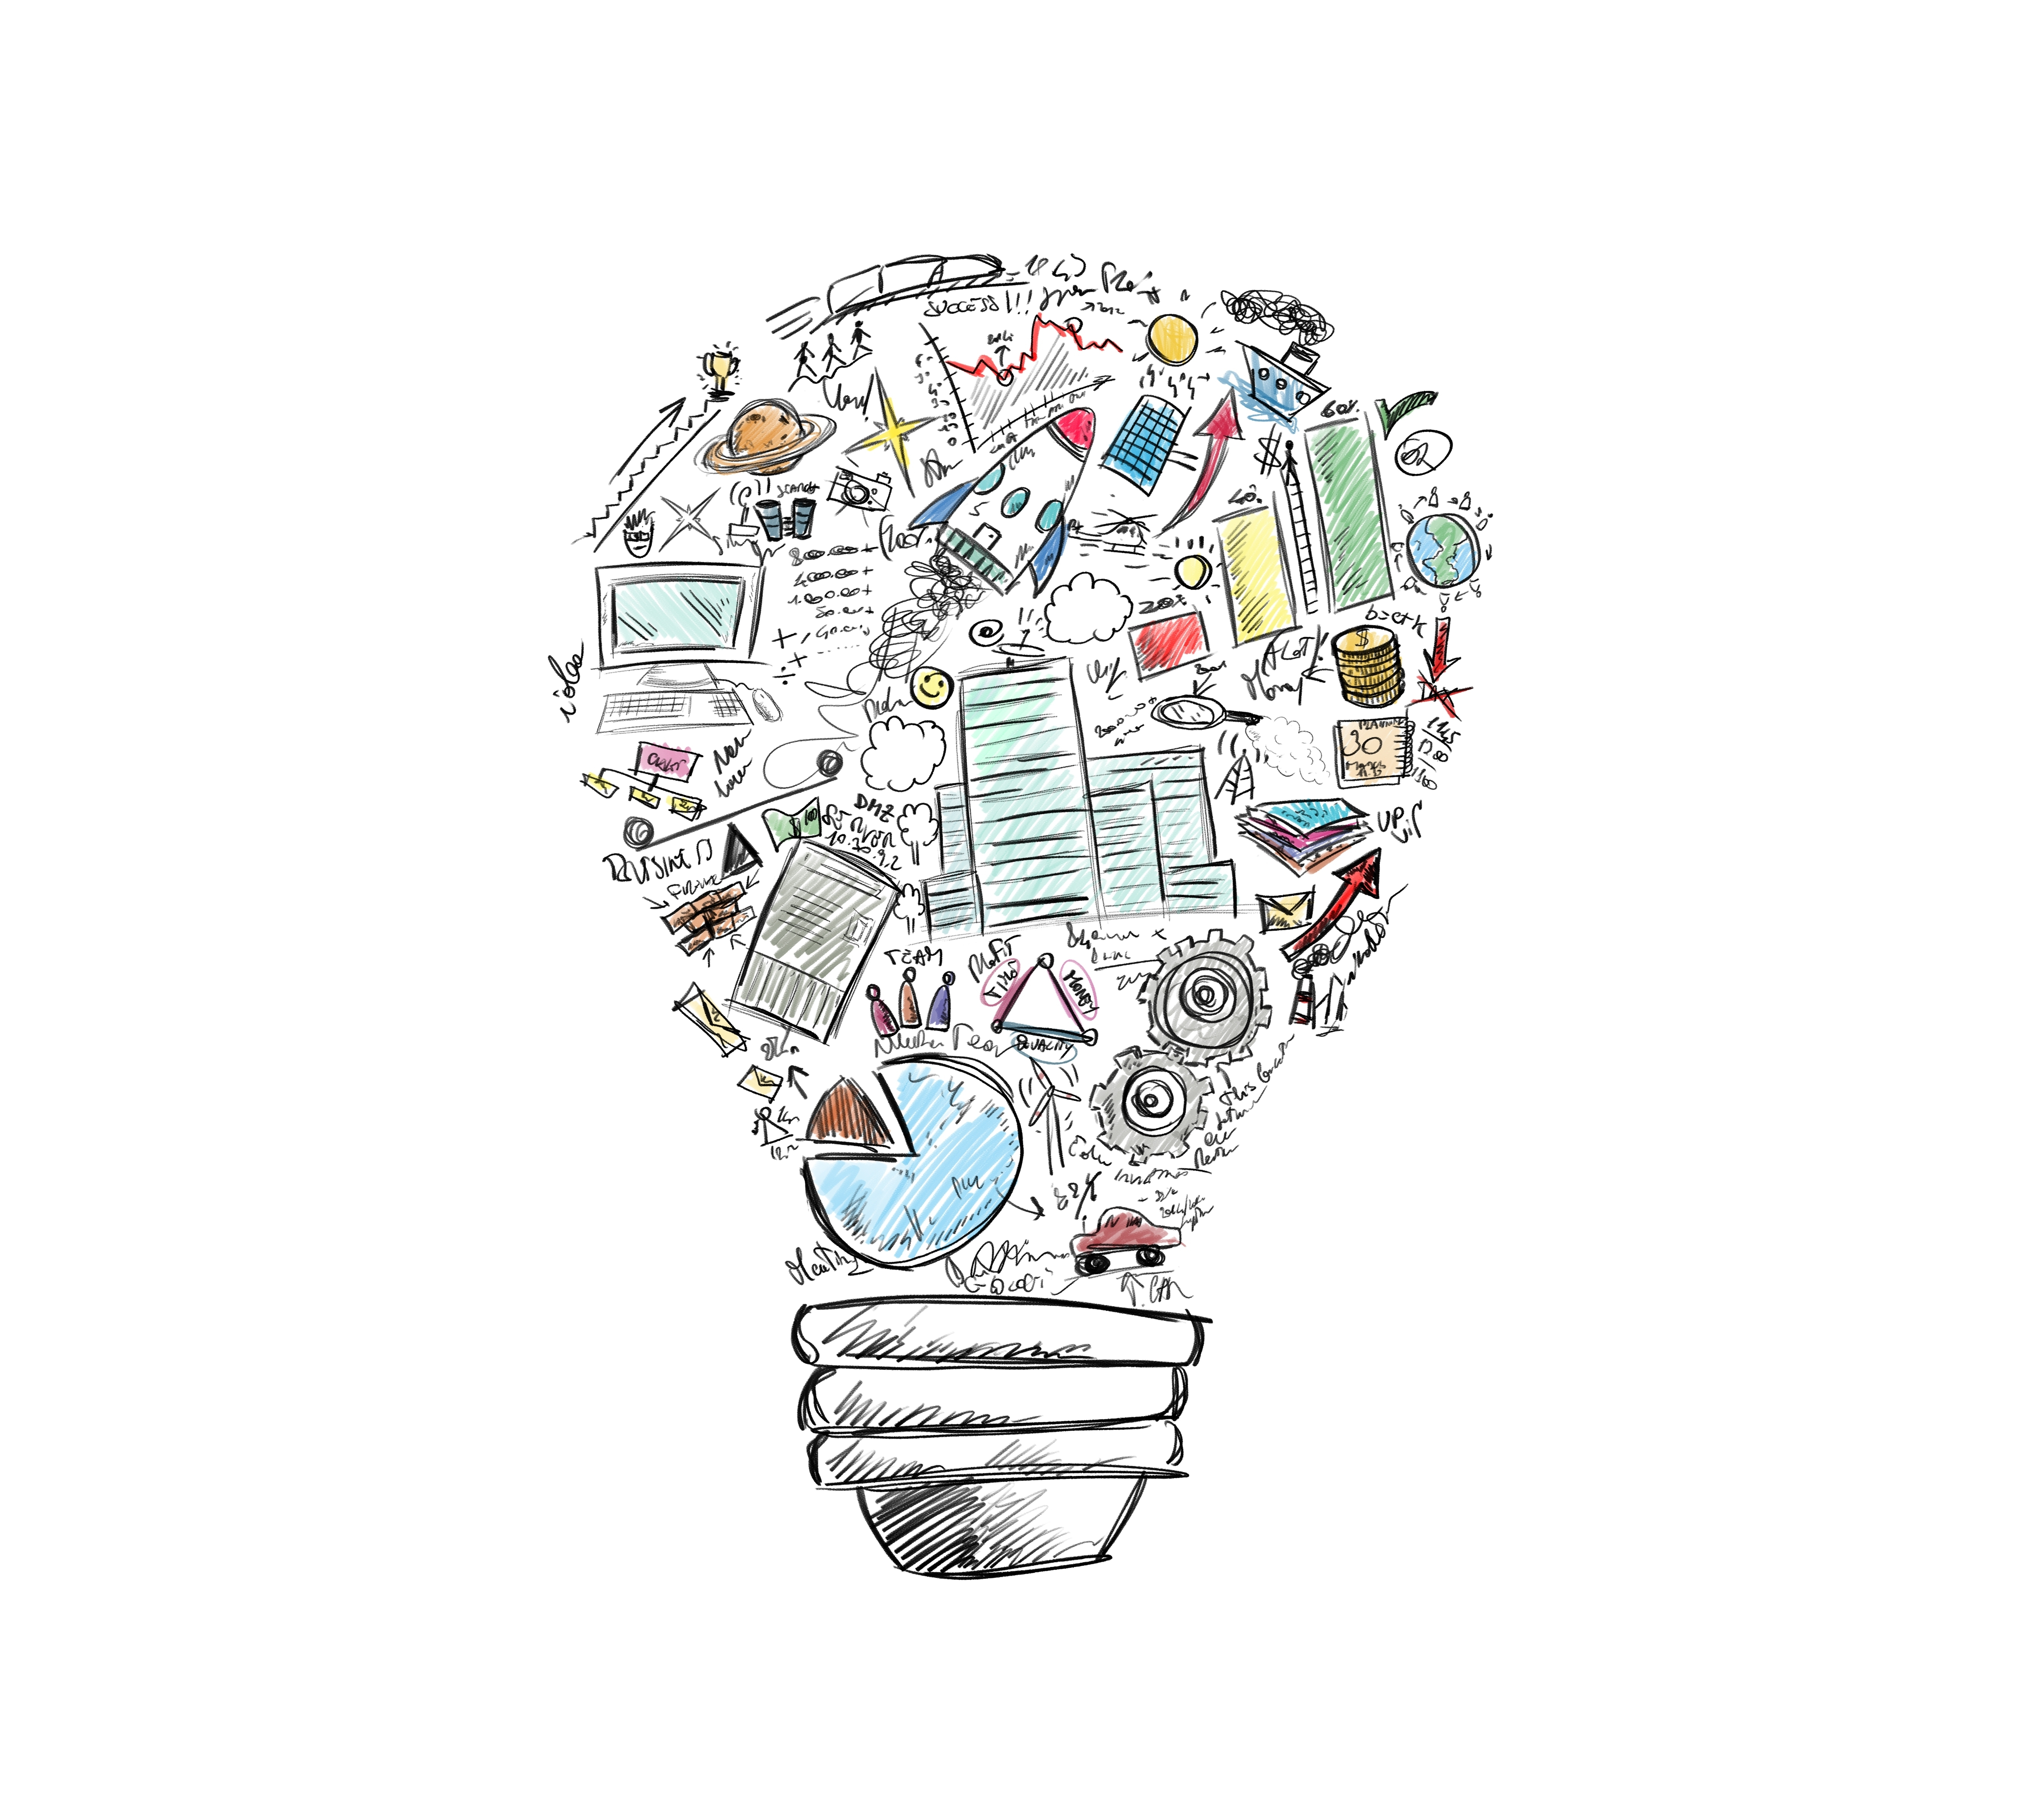 I am full of bright ideas for your website!